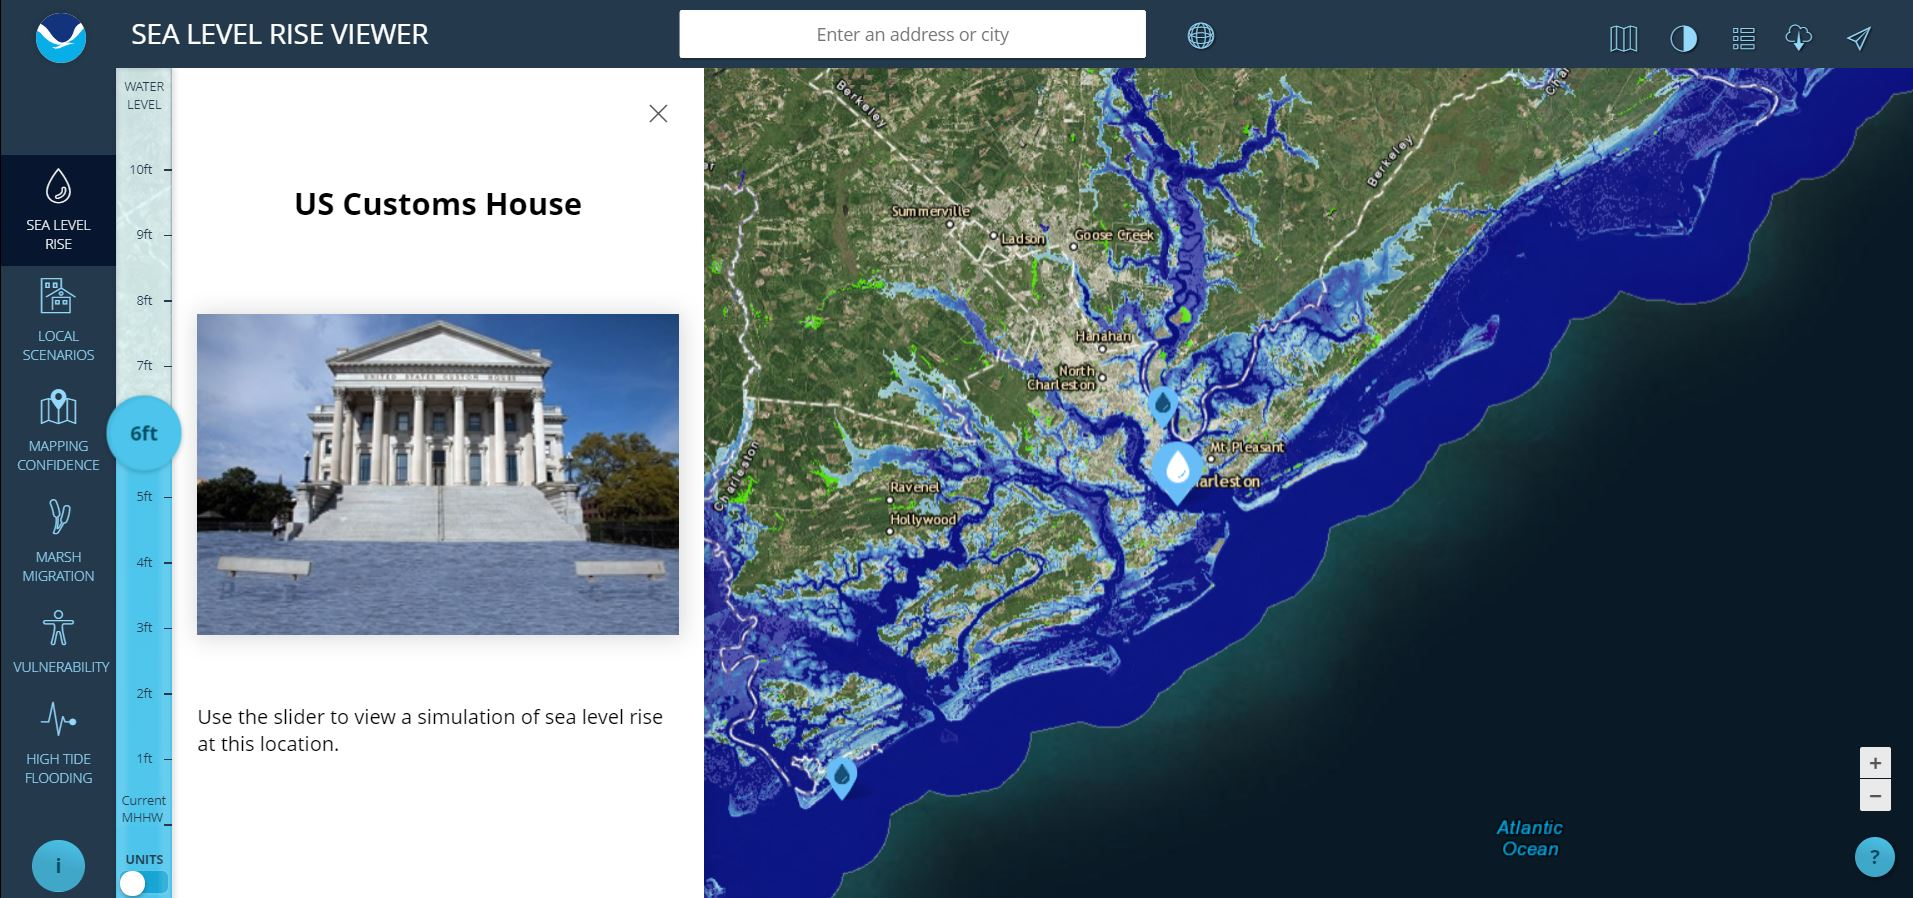 Sea level rise viewer tool screenshots gumiabroncs